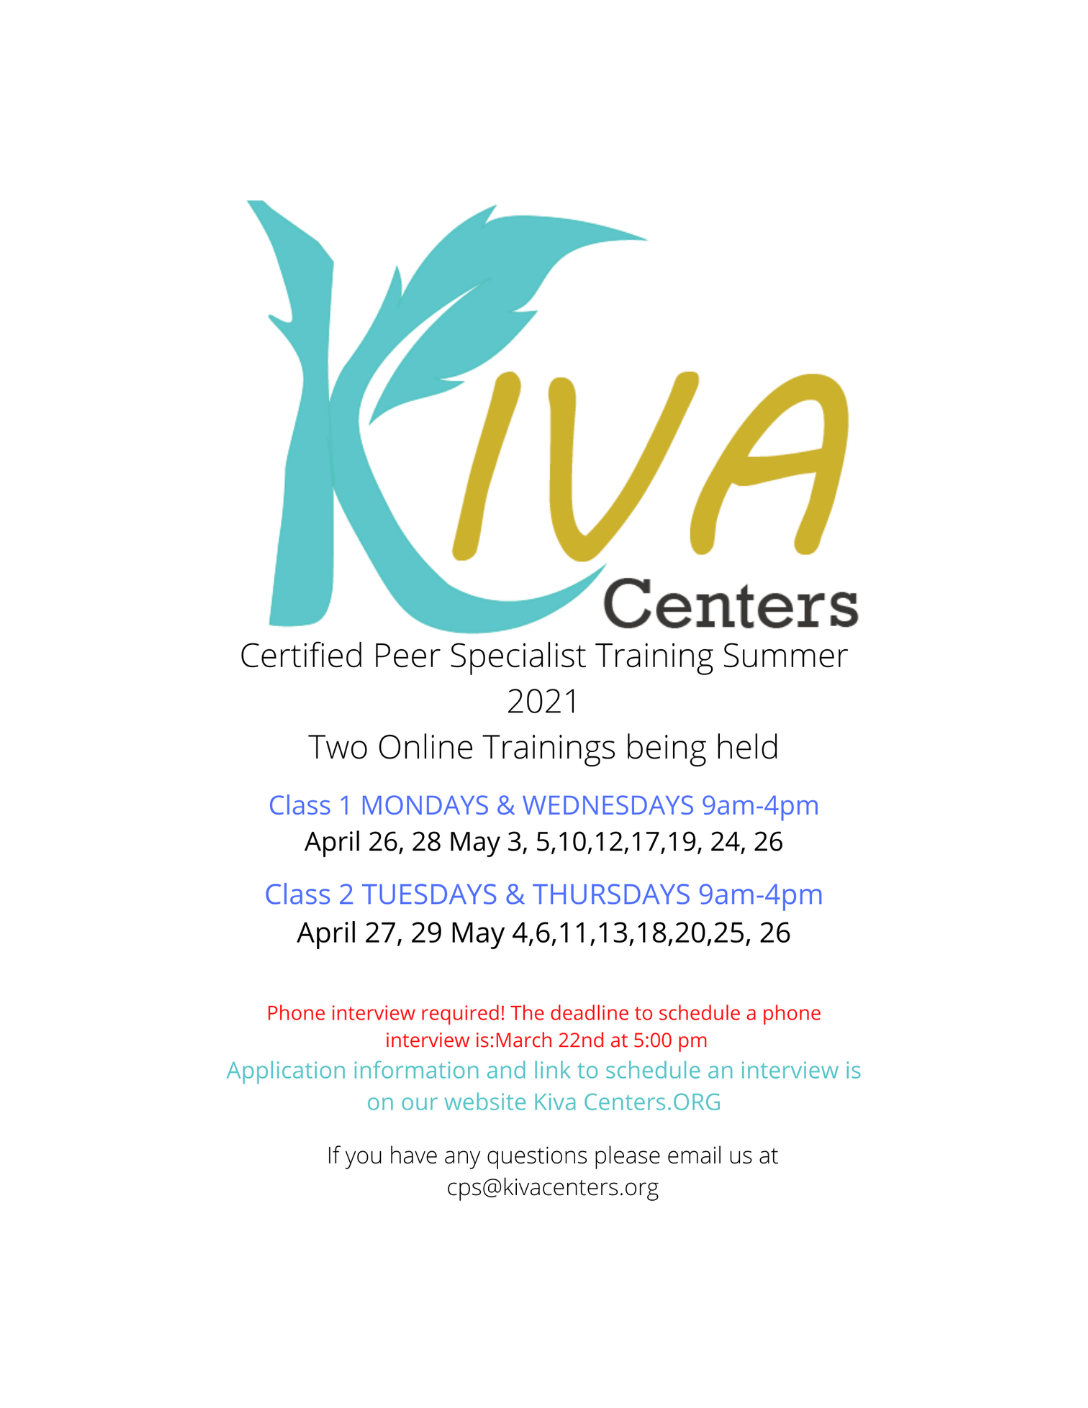 Apply To Be A Certified Peer Specialist (CPS) in MA! Spring 2021 Virtual Trainings Hosted by Kiva Centers